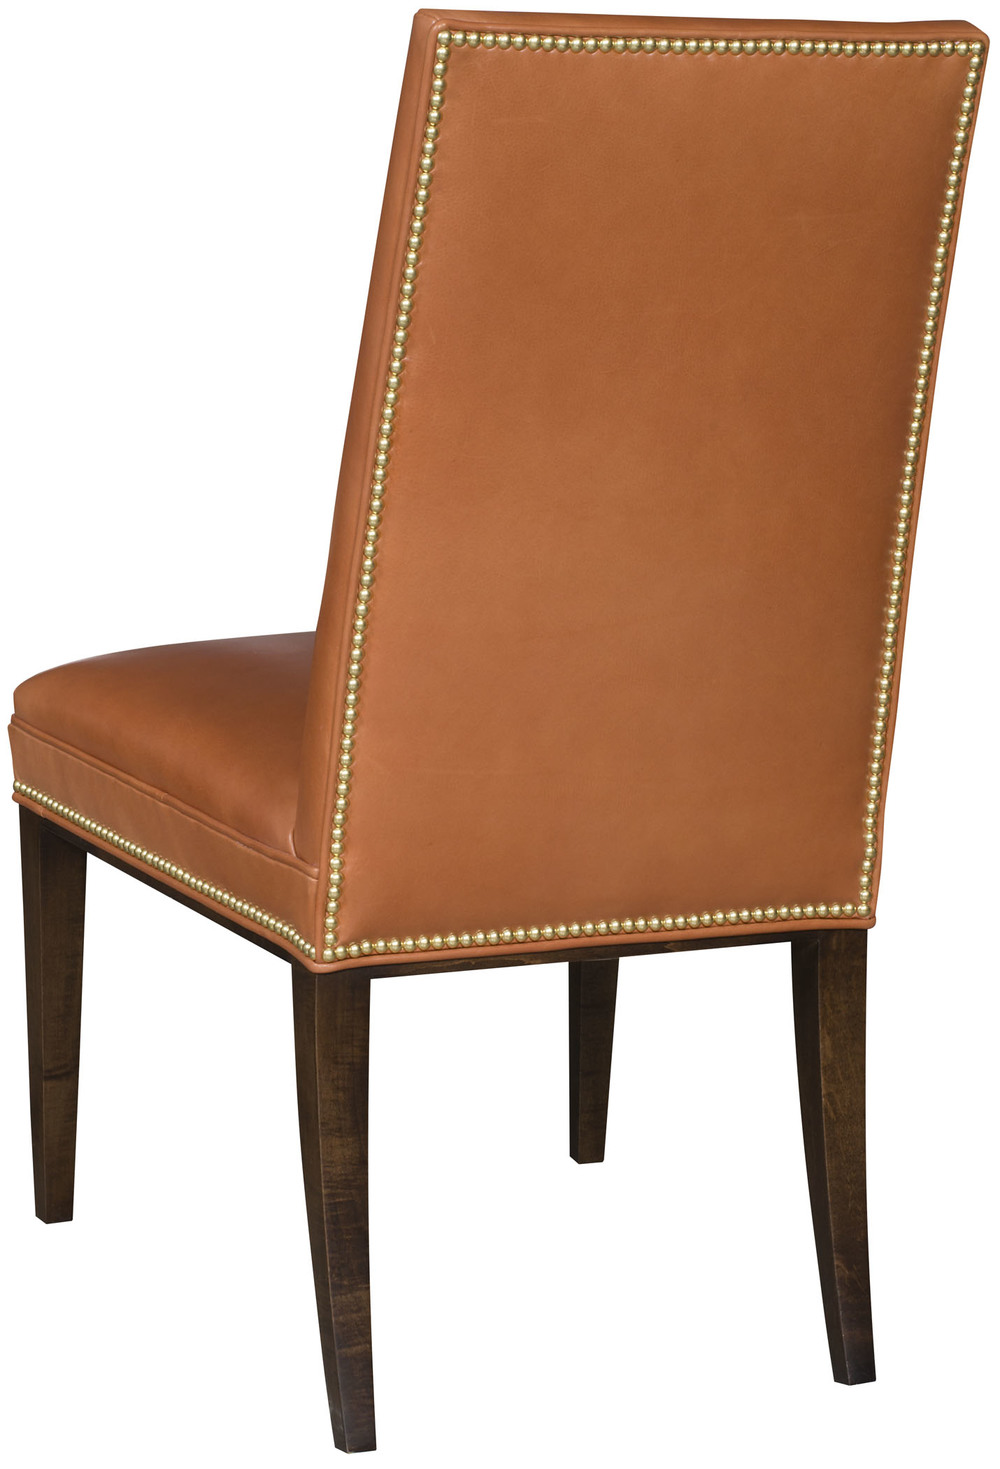 Vanguard Furniture - Hanover Button Back Side Chair